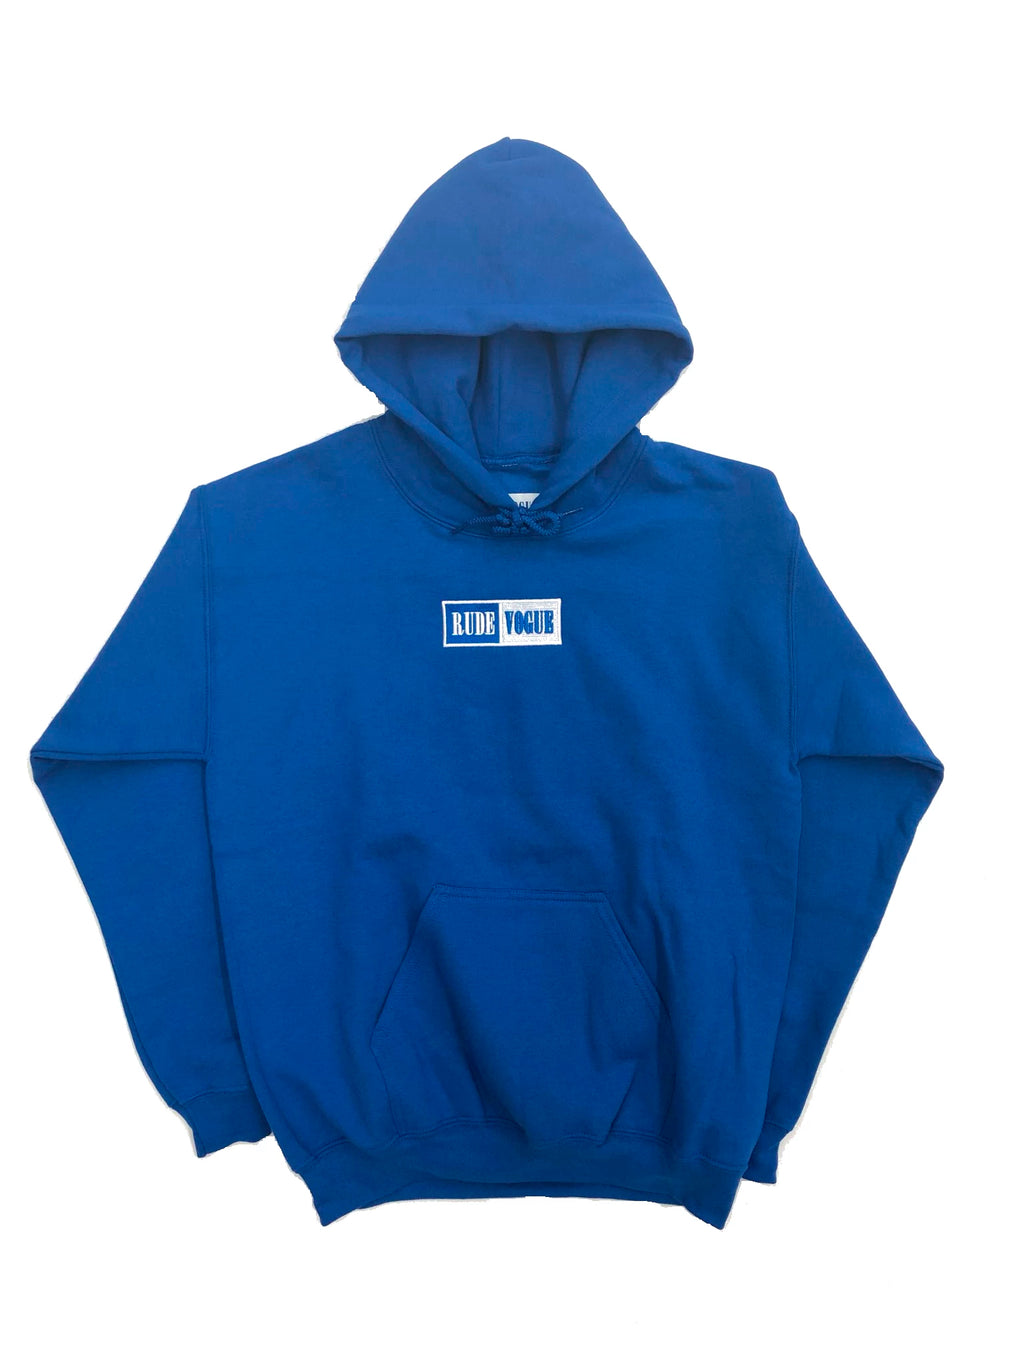 WARM UP HOODIE - ROYAL BLUE/WHITE